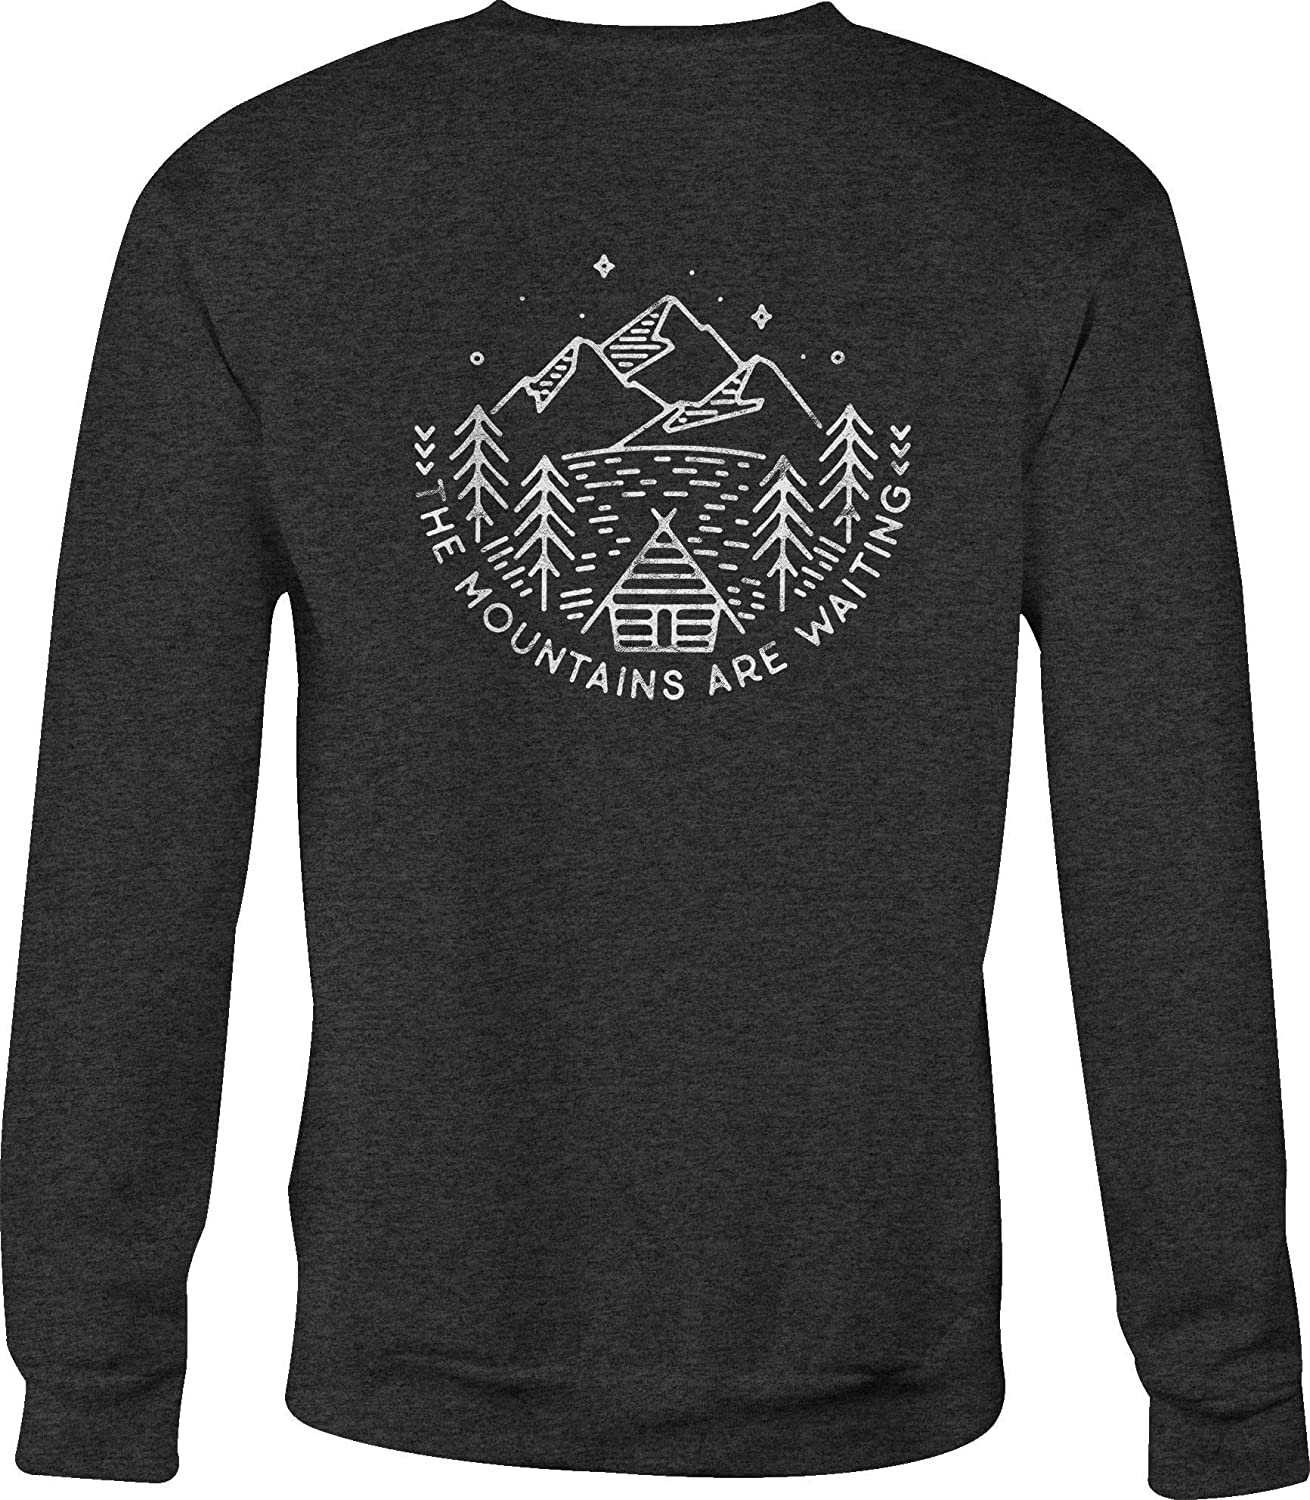 Crewneck Sweatshirt The Mountains are Waiting Cabin Pine Trees Lake